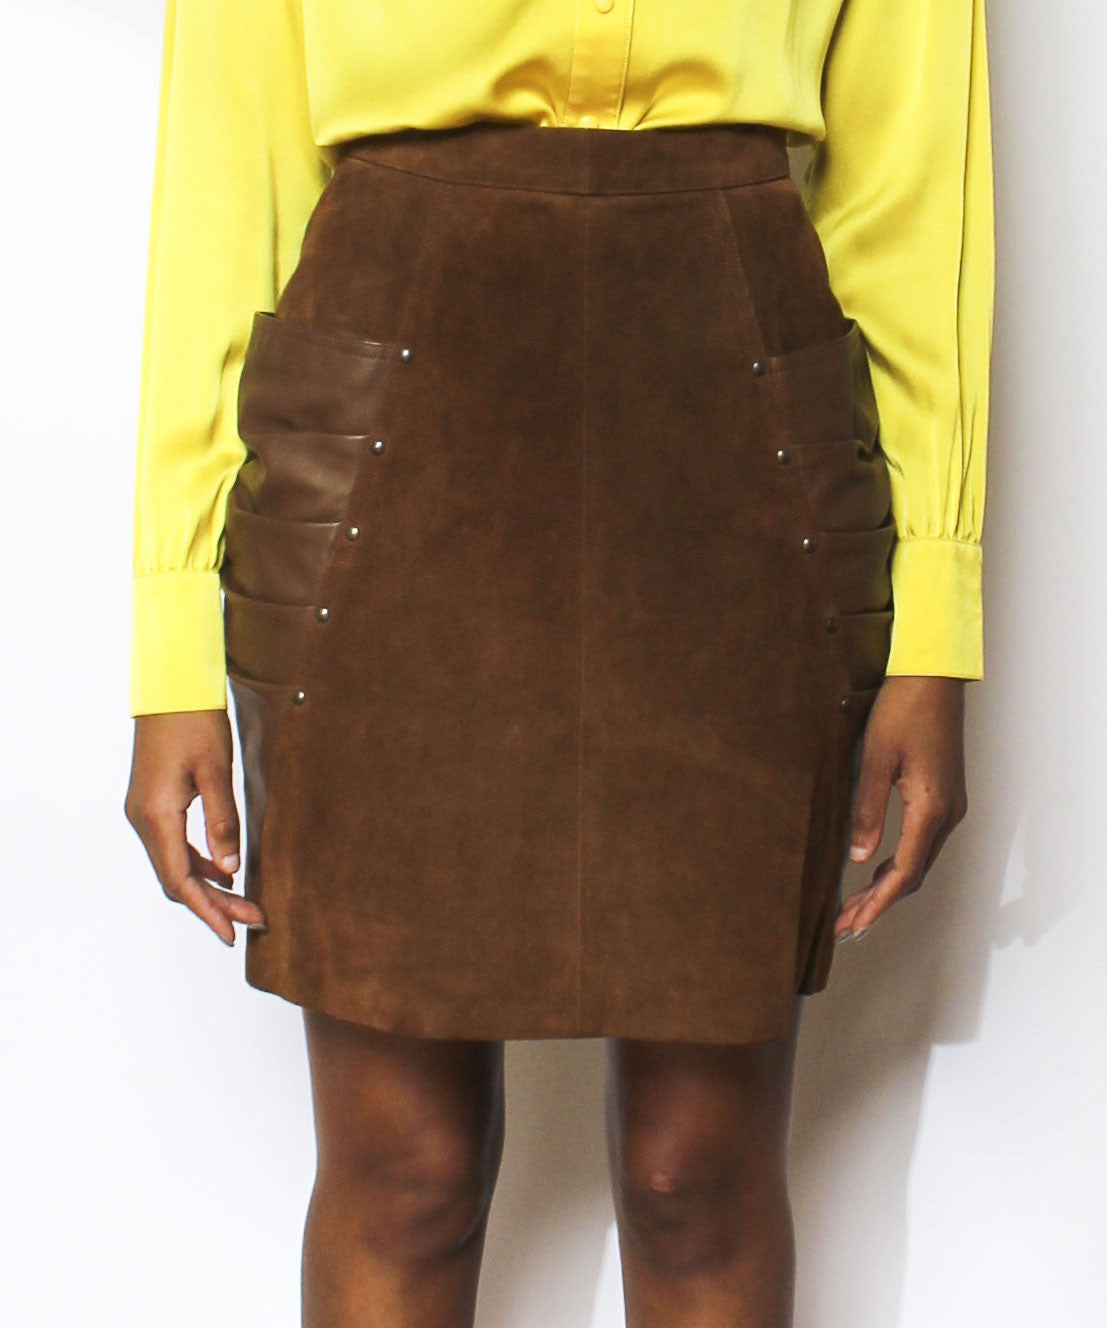 1980s Suede Leather Pencil Skirt - C.Madeleine's